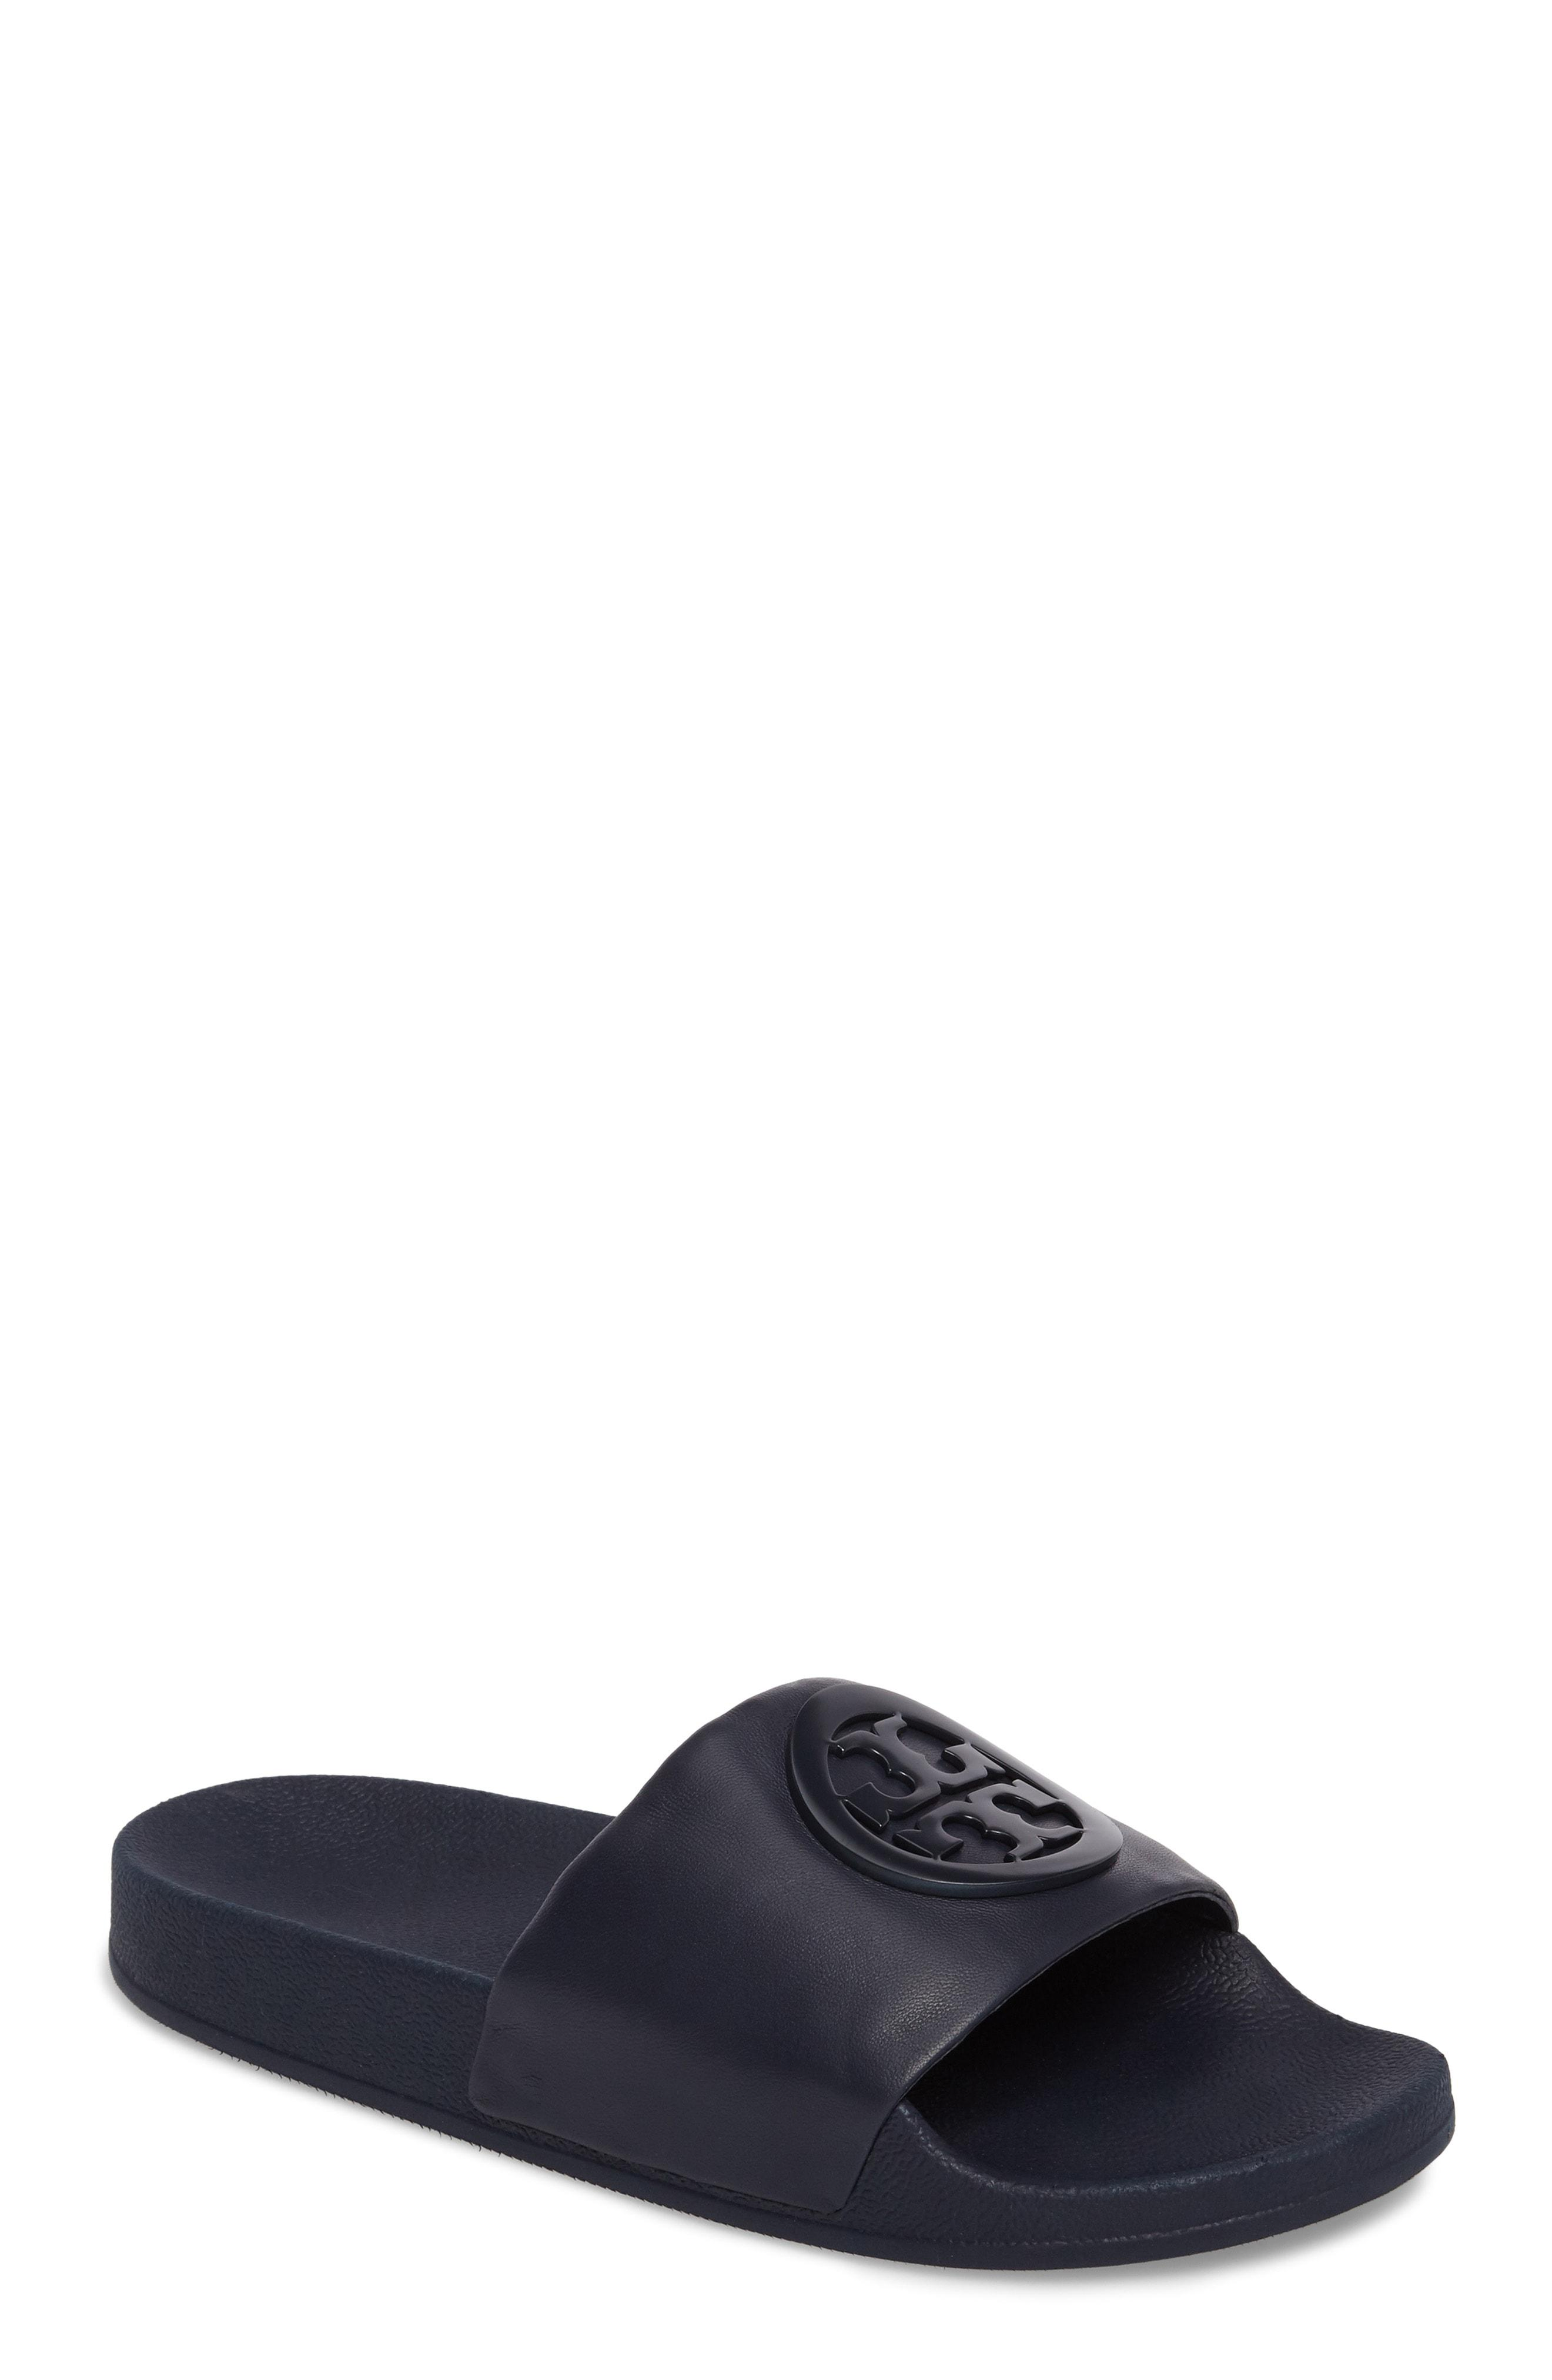 a0bc05e15 Lyst - Tory Burch Lina Slide Sandal in Blue